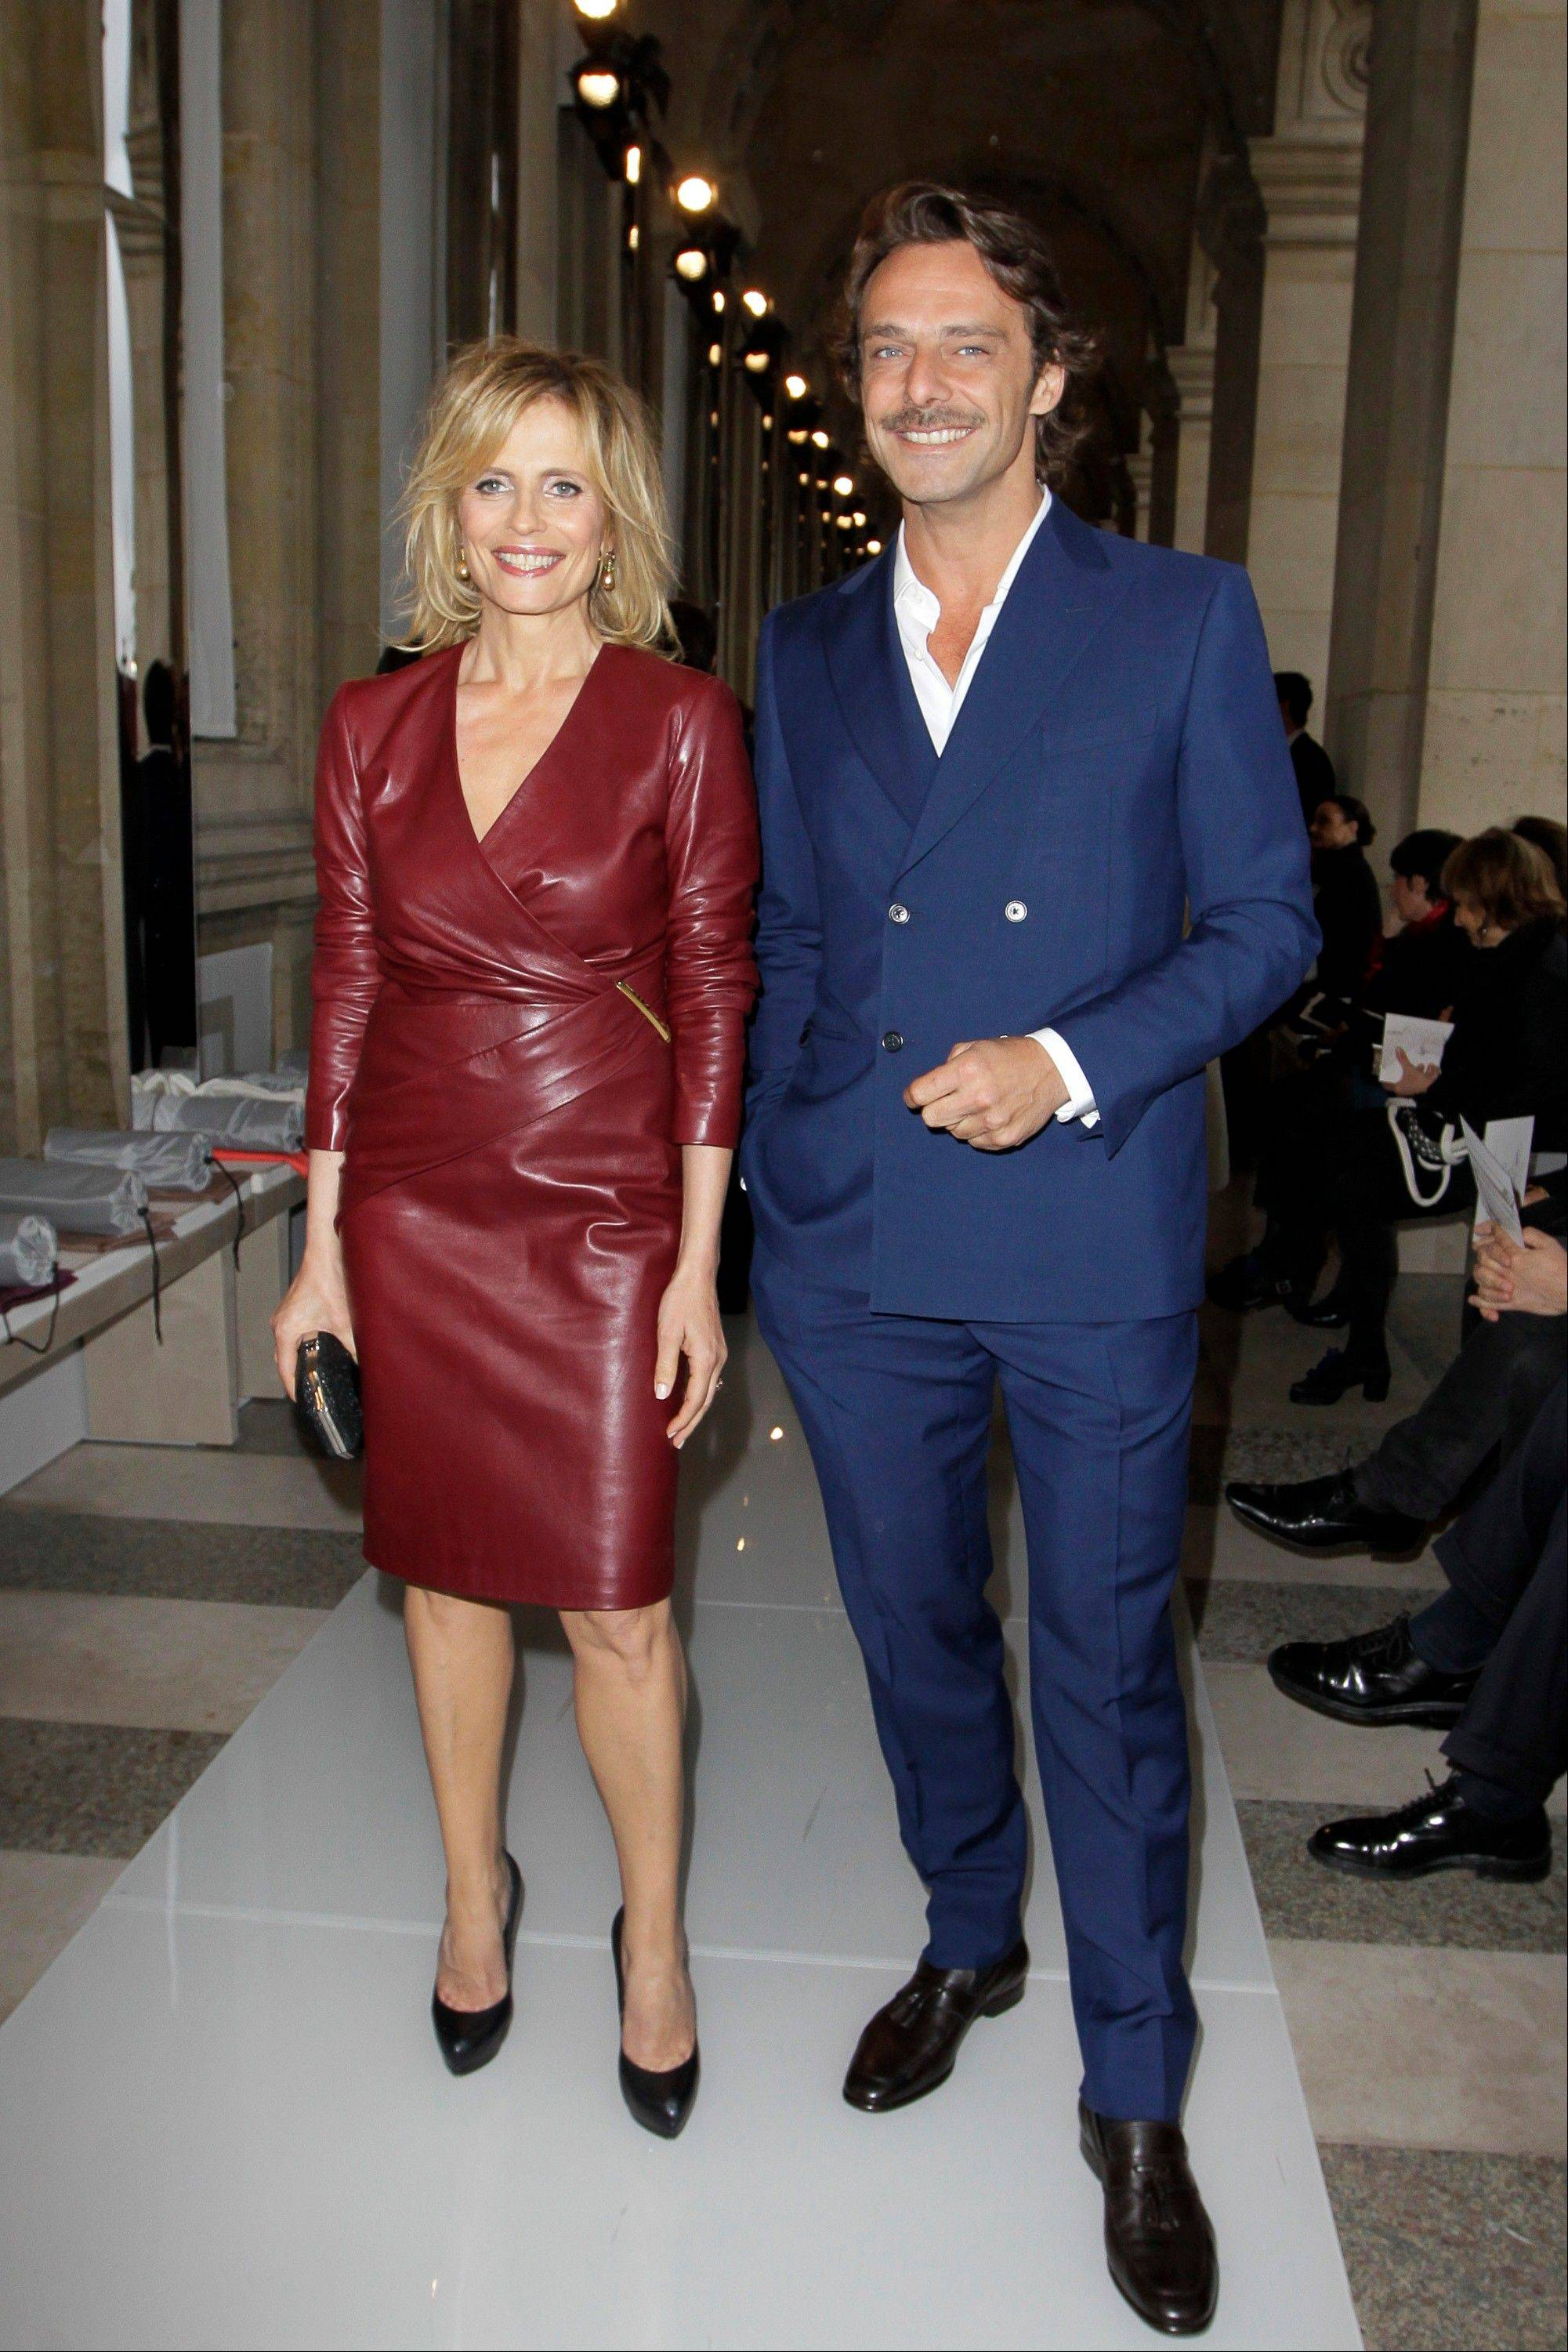 Italian actors Isabella Ferrari, left, and Alessandro Preziosi arrive for the Salvatore Ferragamo Cruise 2013 fashion show at Louvre Museum in Paris, on Tuesday.